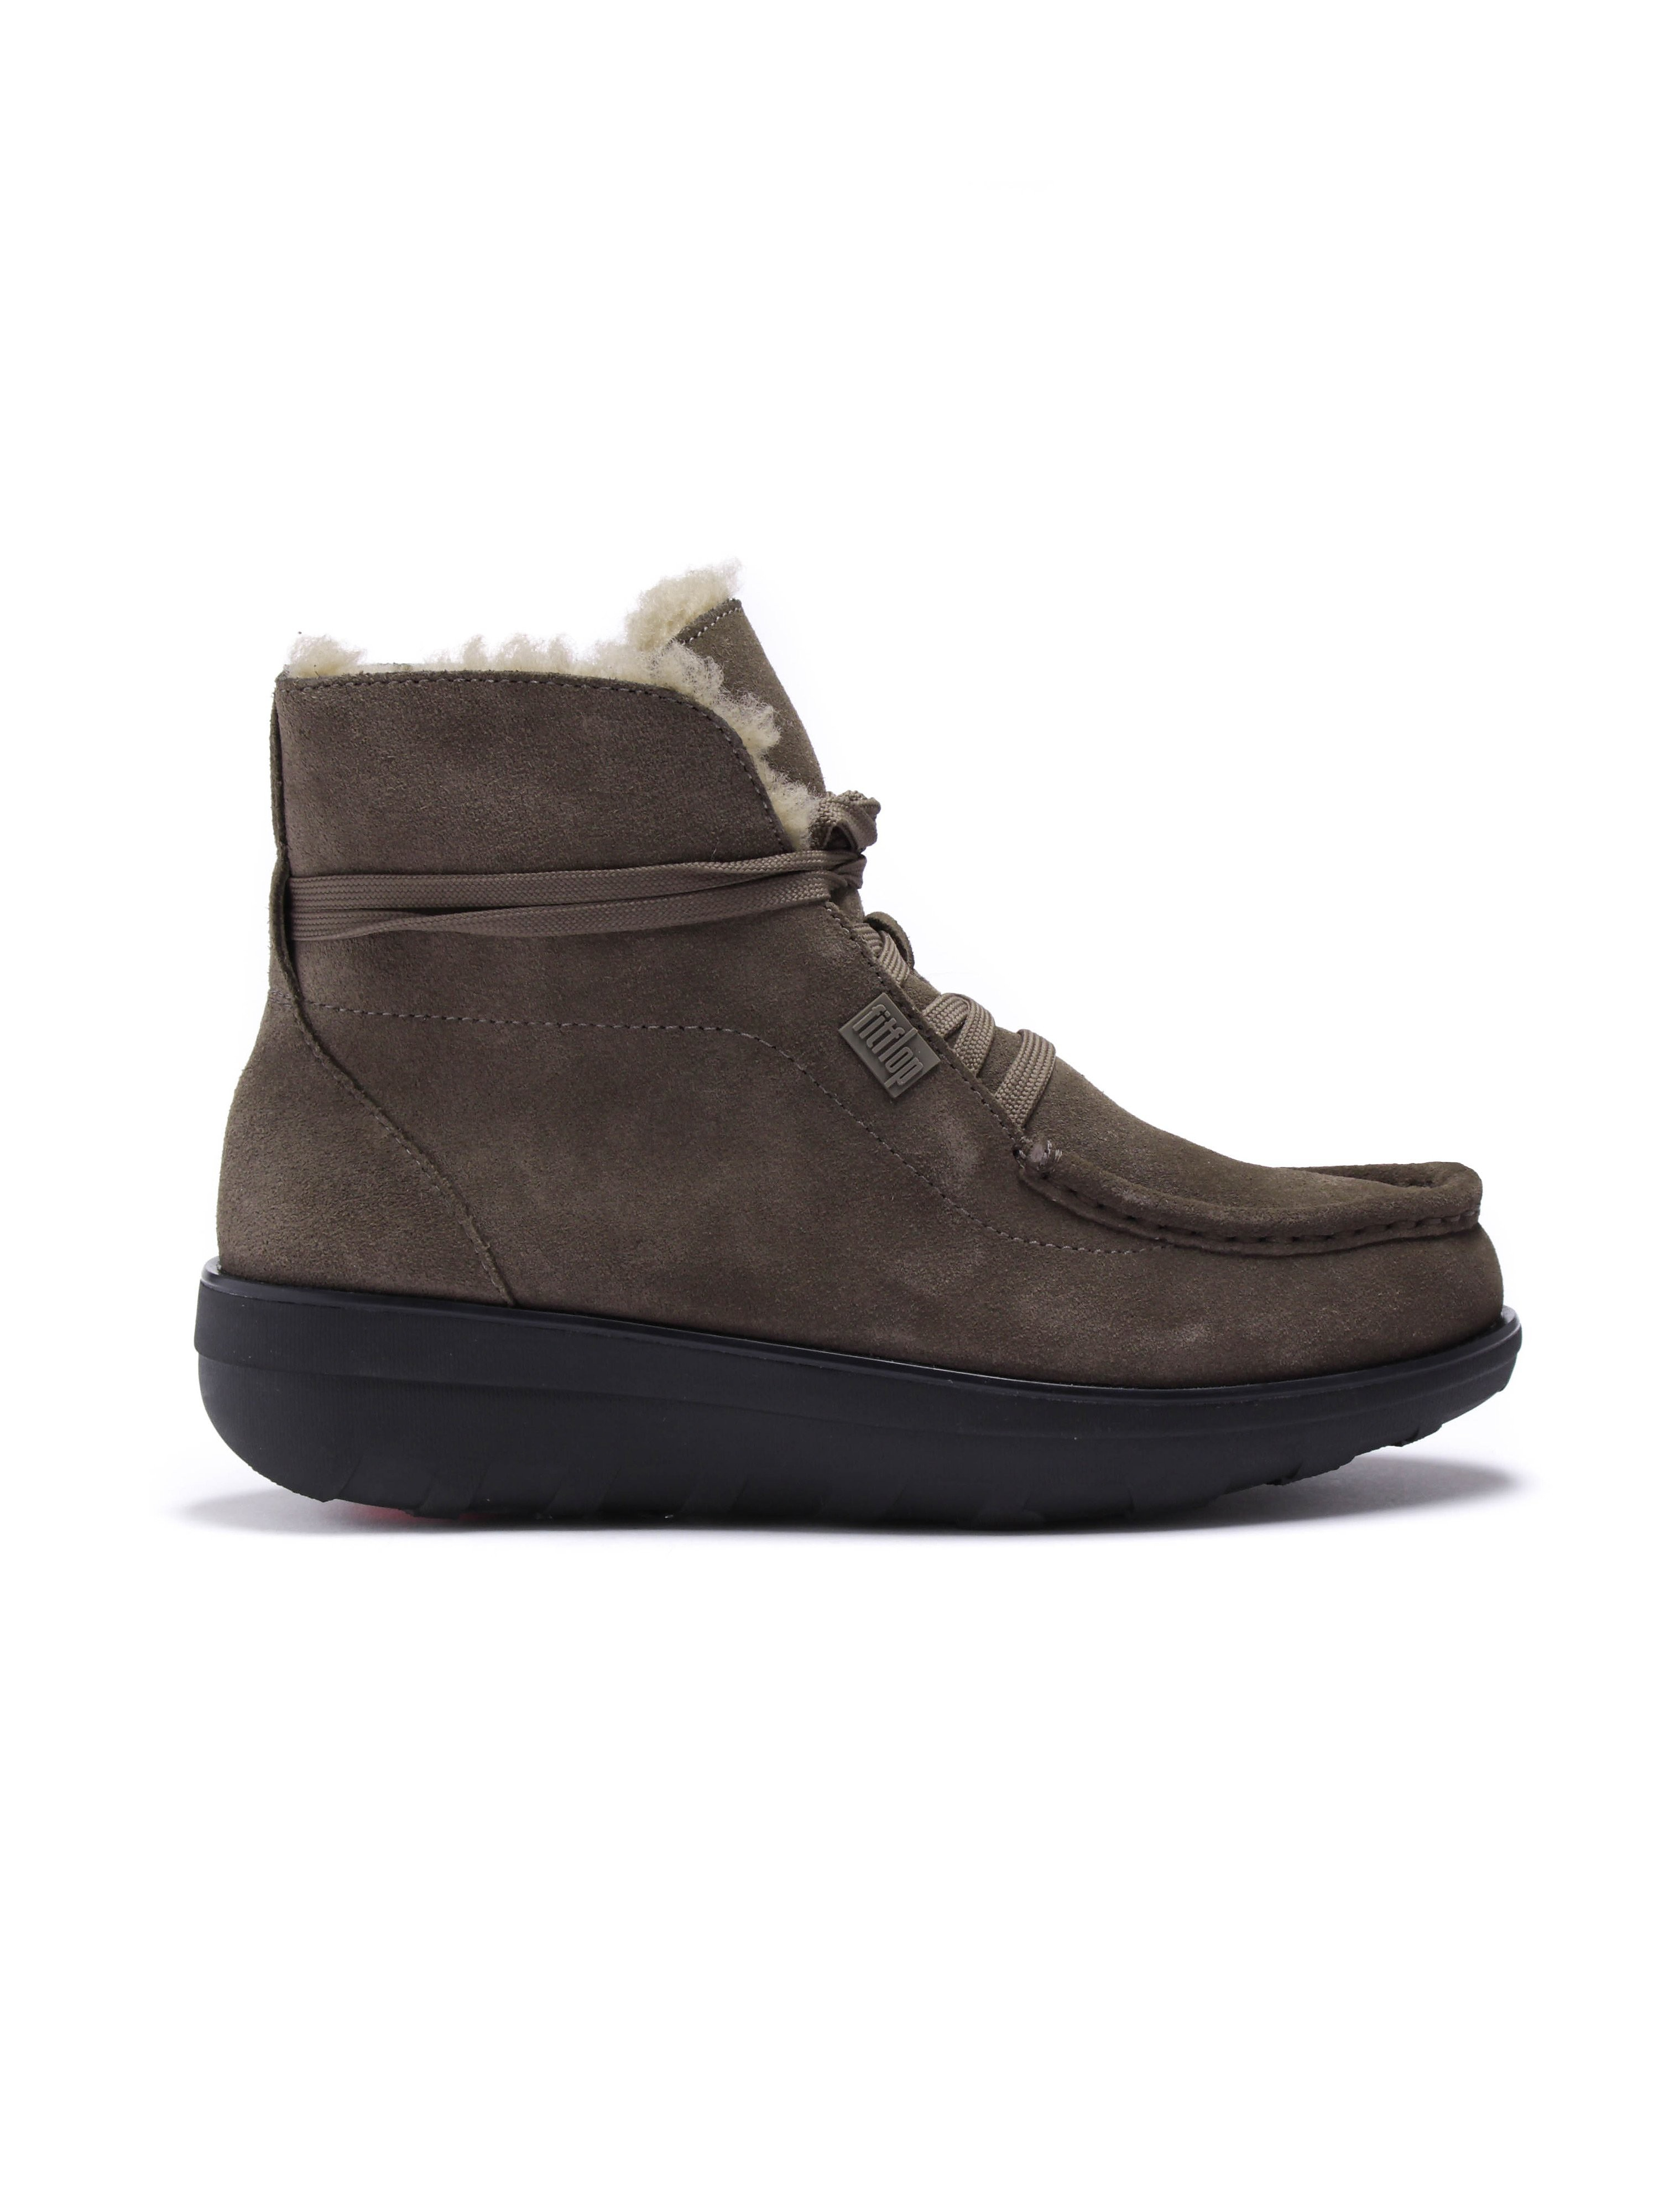 FitFlop Womens Slip-On Shearling Ankle Boots - Bungee Cord Suede